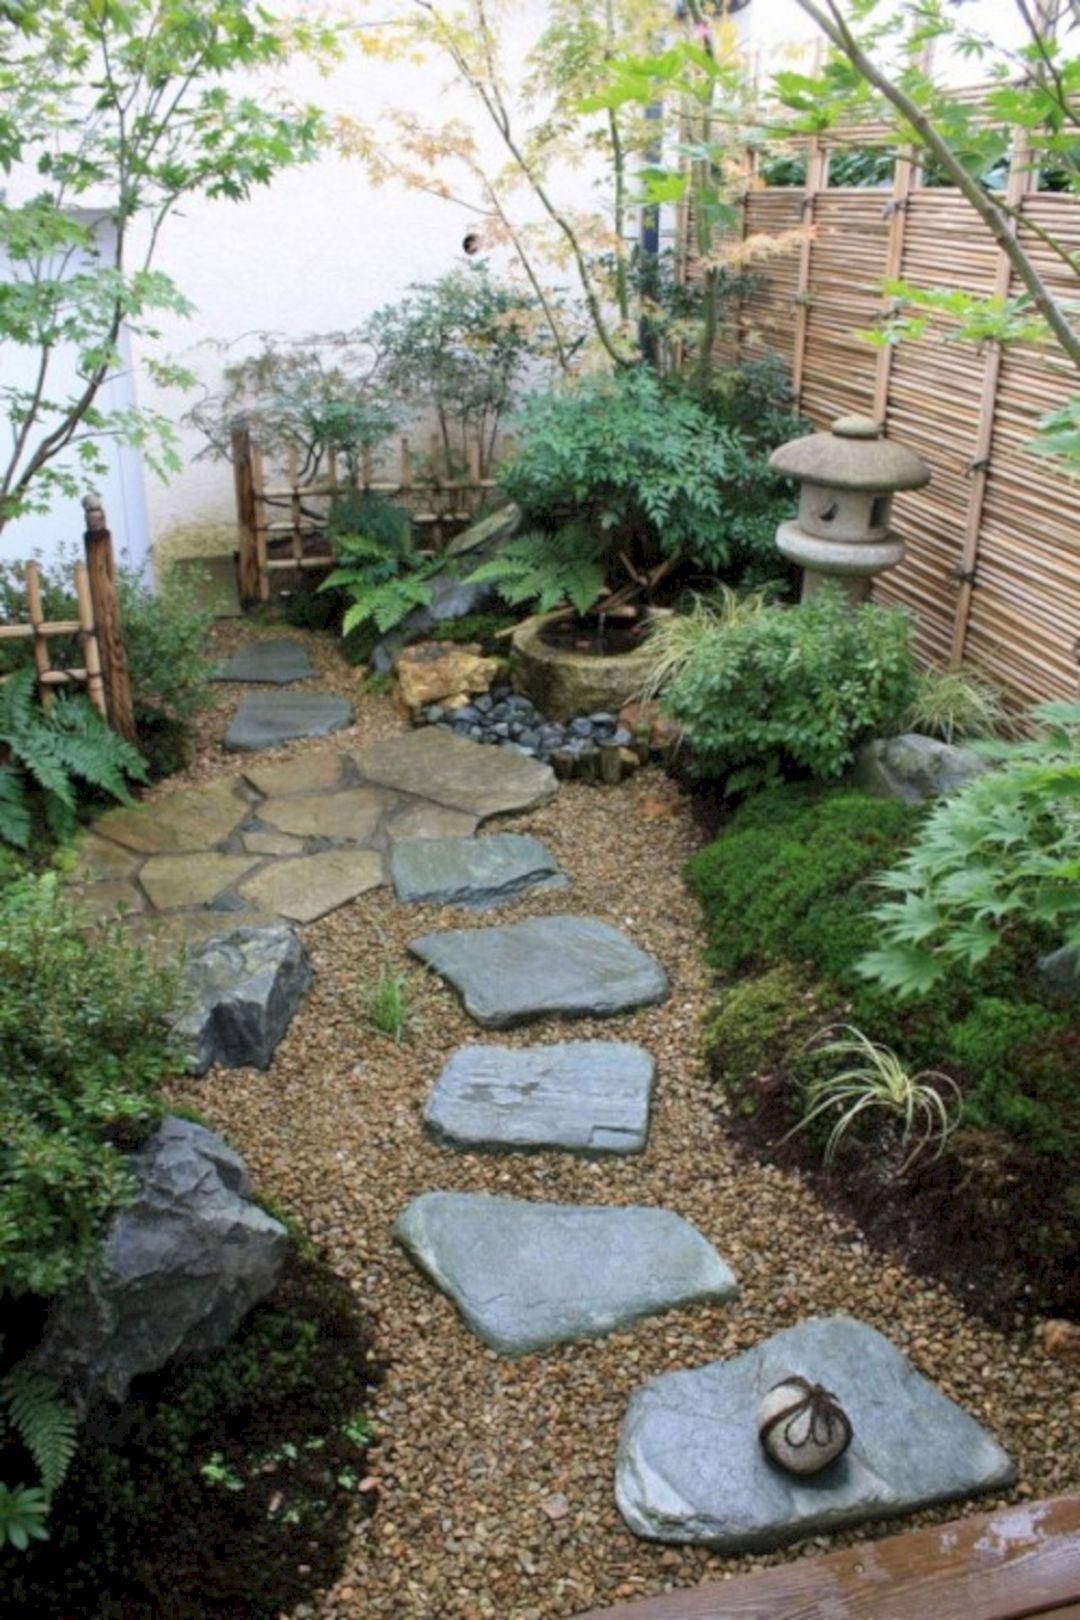 76 Beautiful Zen Garden Ideas For Backyard 760 | Zen garden ... on butterfly garden design ideas, zen gardens landscaping, zen dining room design ideas, zen garden design in small places, rain garden design ideas, zen patio ideas, xeriscape garden design ideas, black garden design ideas, small yard garden design ideas, zen garden design principles, chinese garden design ideas, zen aquarium design ideas, zen office design ideas, backyard zen garden ideas, buddhist garden ideas, zen front yard landscaping ideas, zen small backyard ideas, meditation garden design ideas, japanese zen garden ideas,